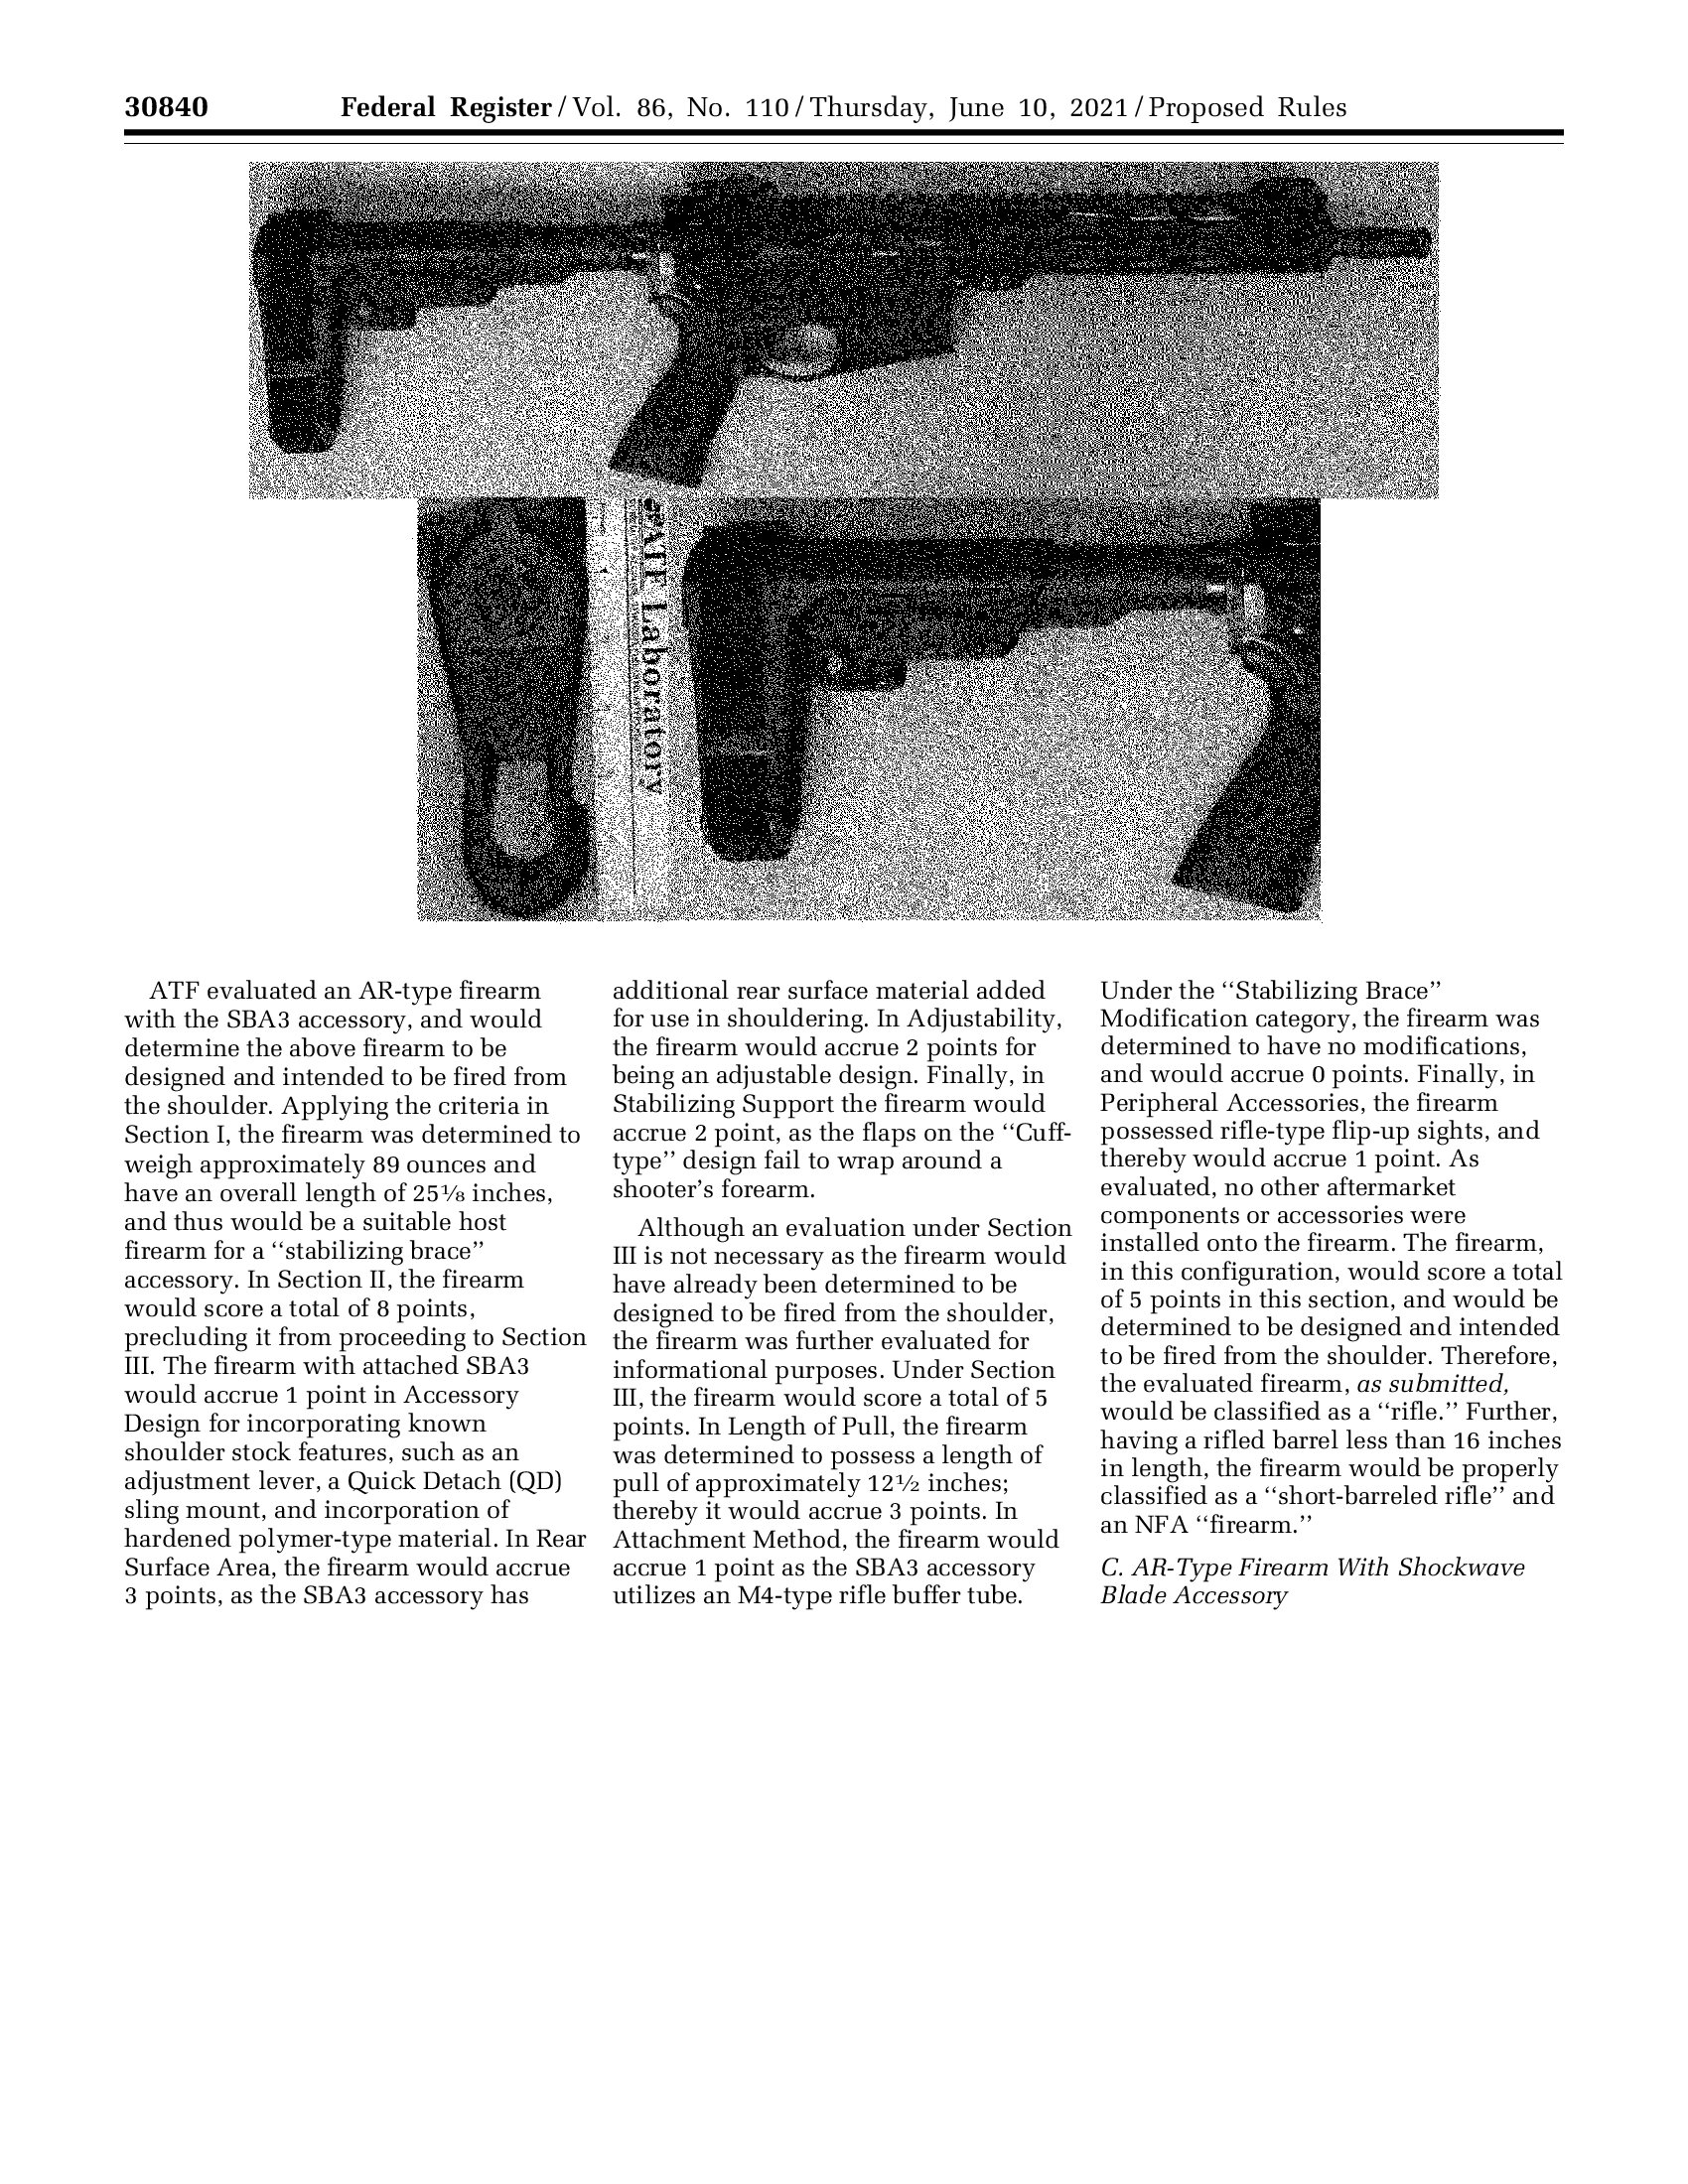 Incorporates shoulder stock design feature(s) - Example Image